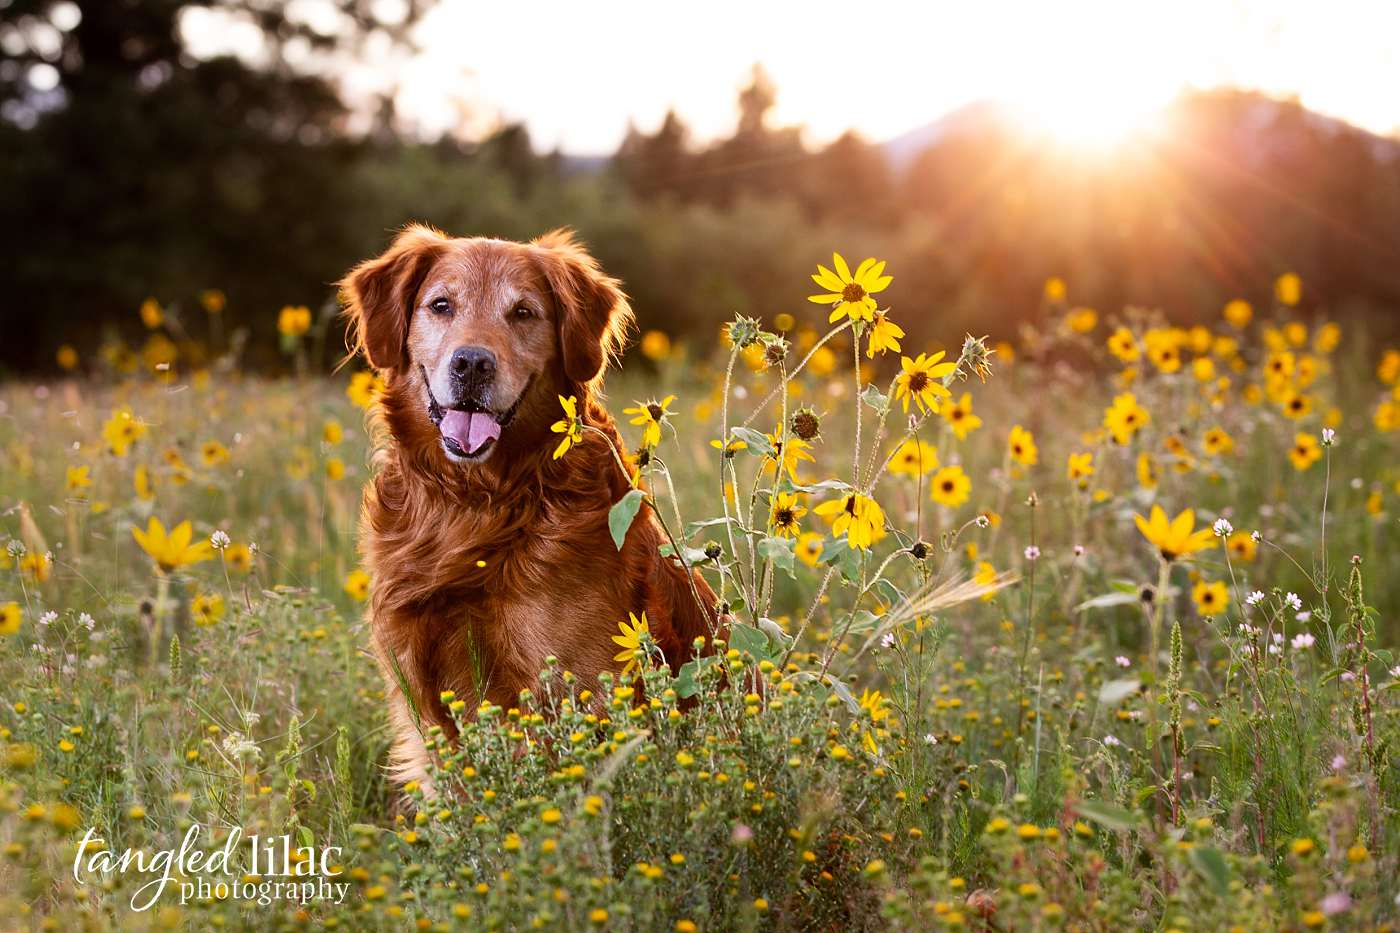 Happy old dog at golden hour in a field of flowers